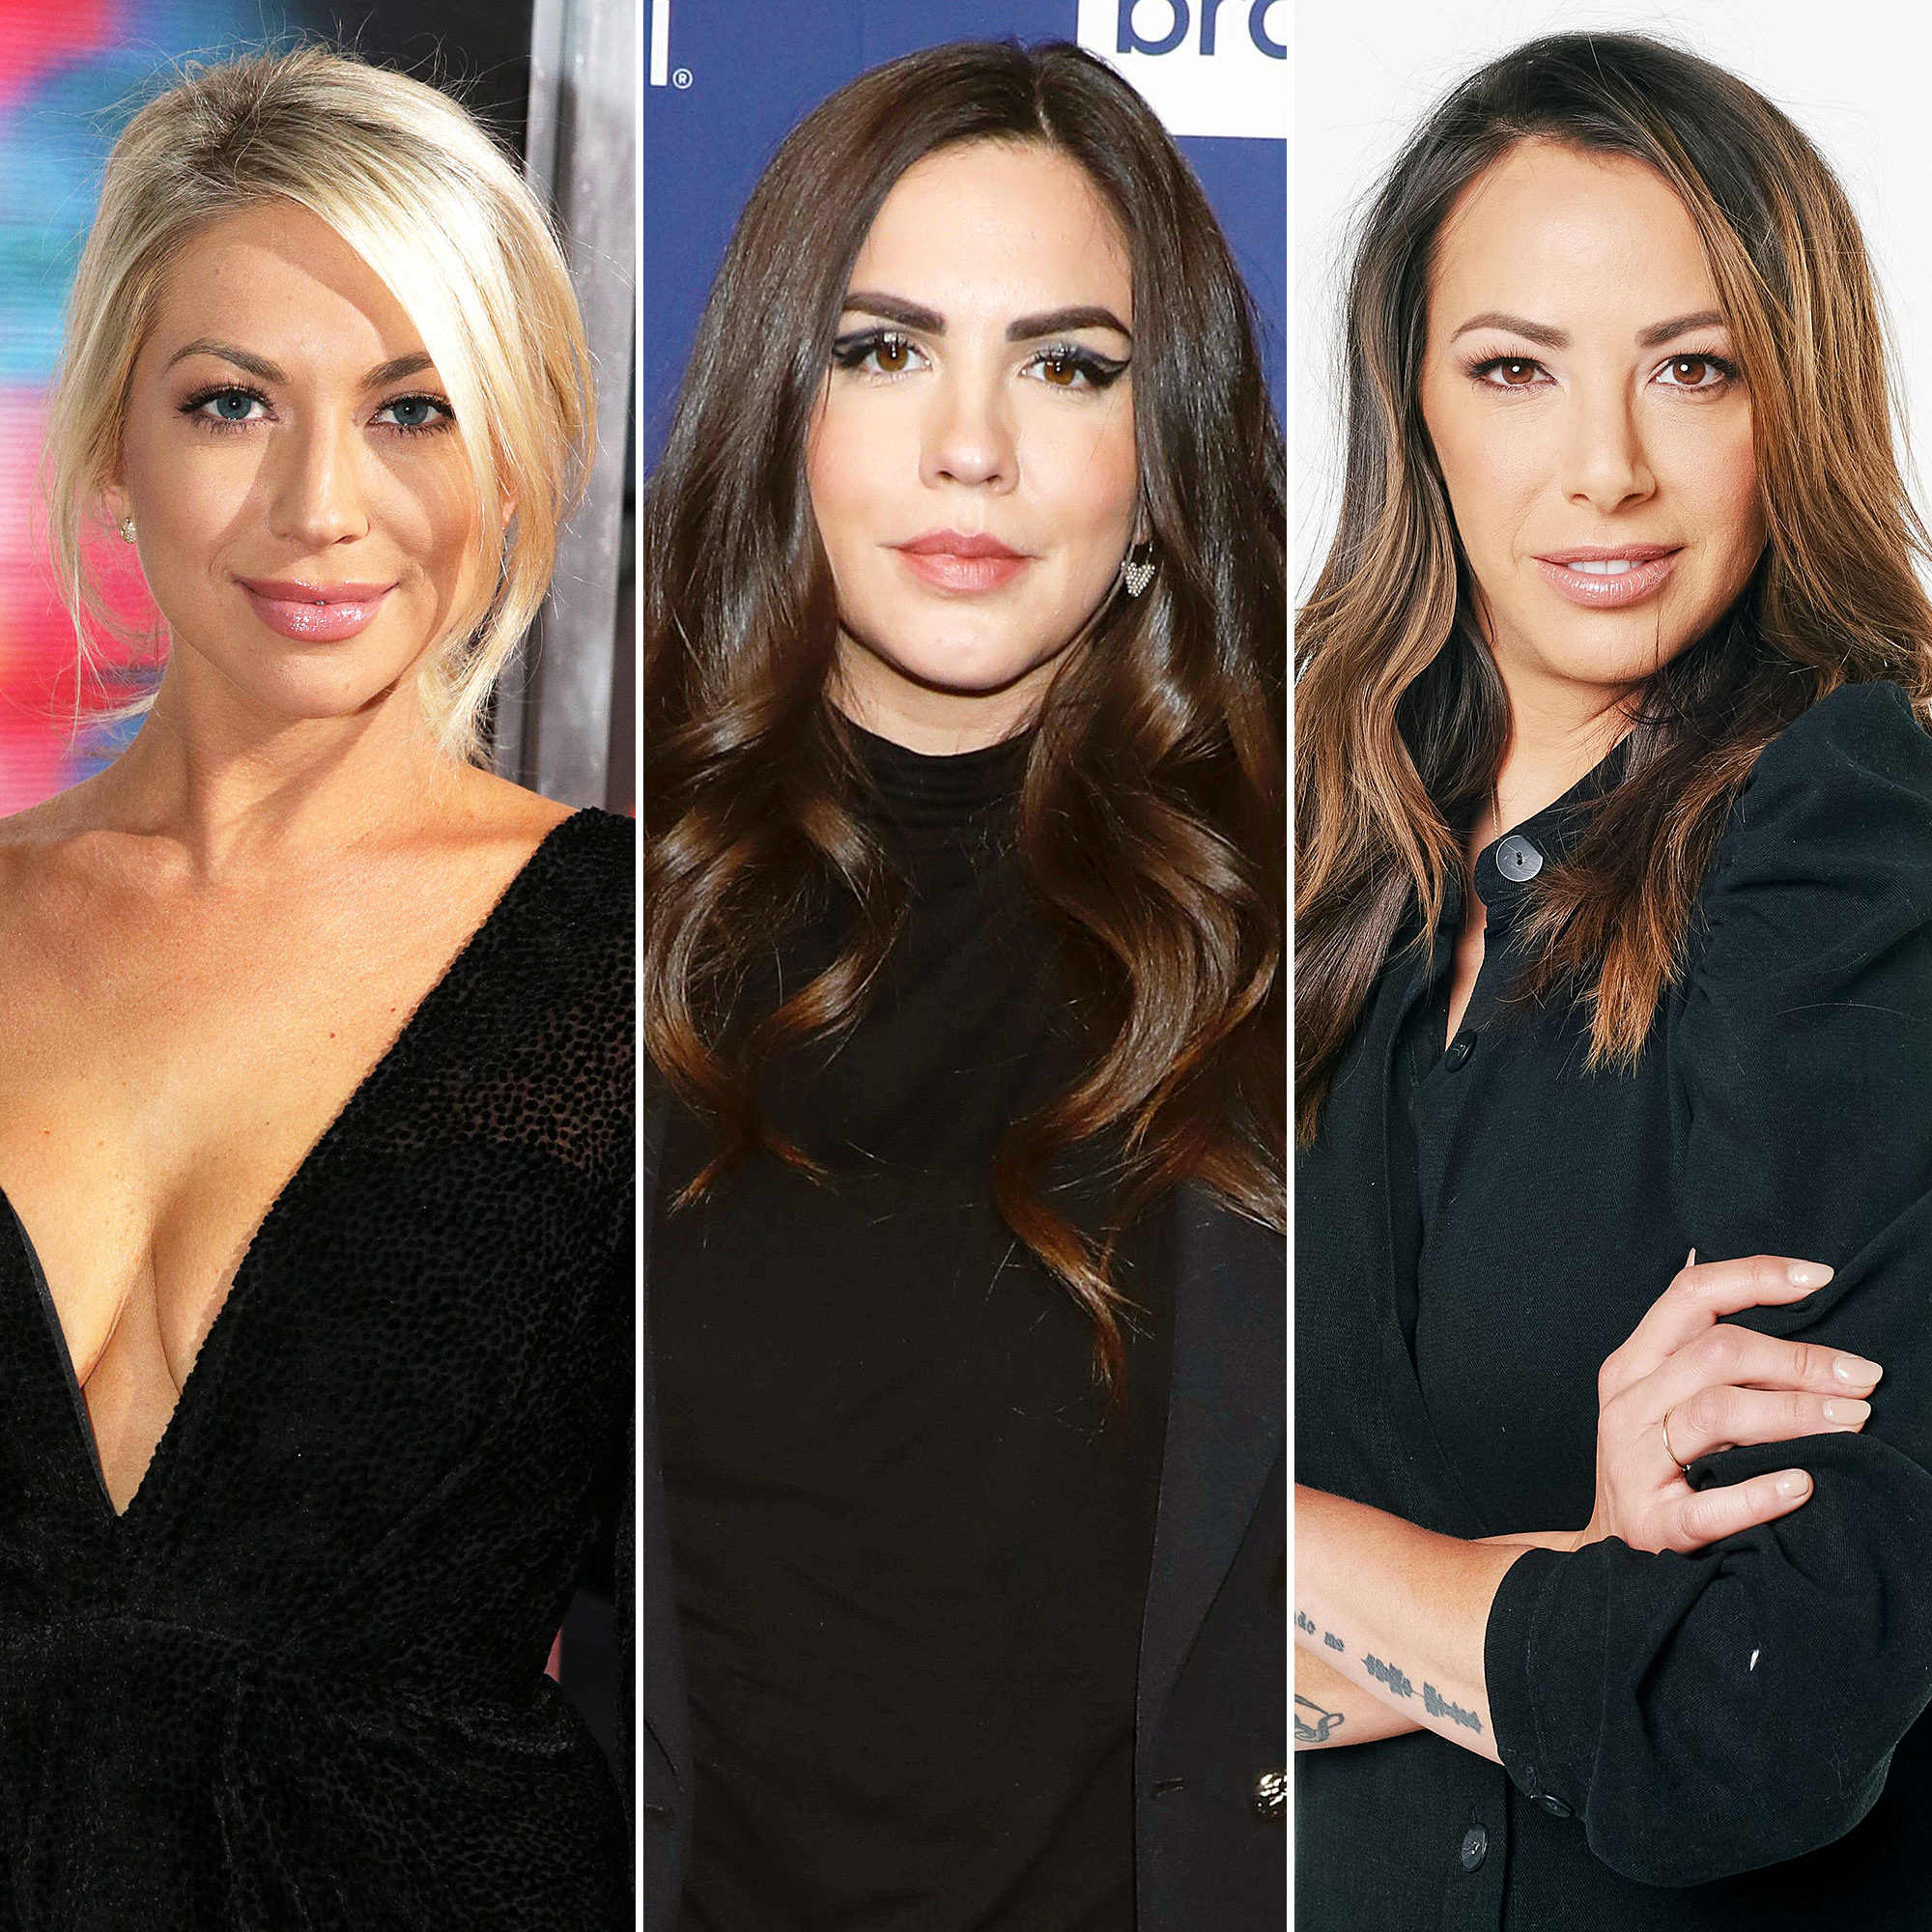 Stassi Schroeder and Katie Maloney Share Reason for Kristen Doute Feud